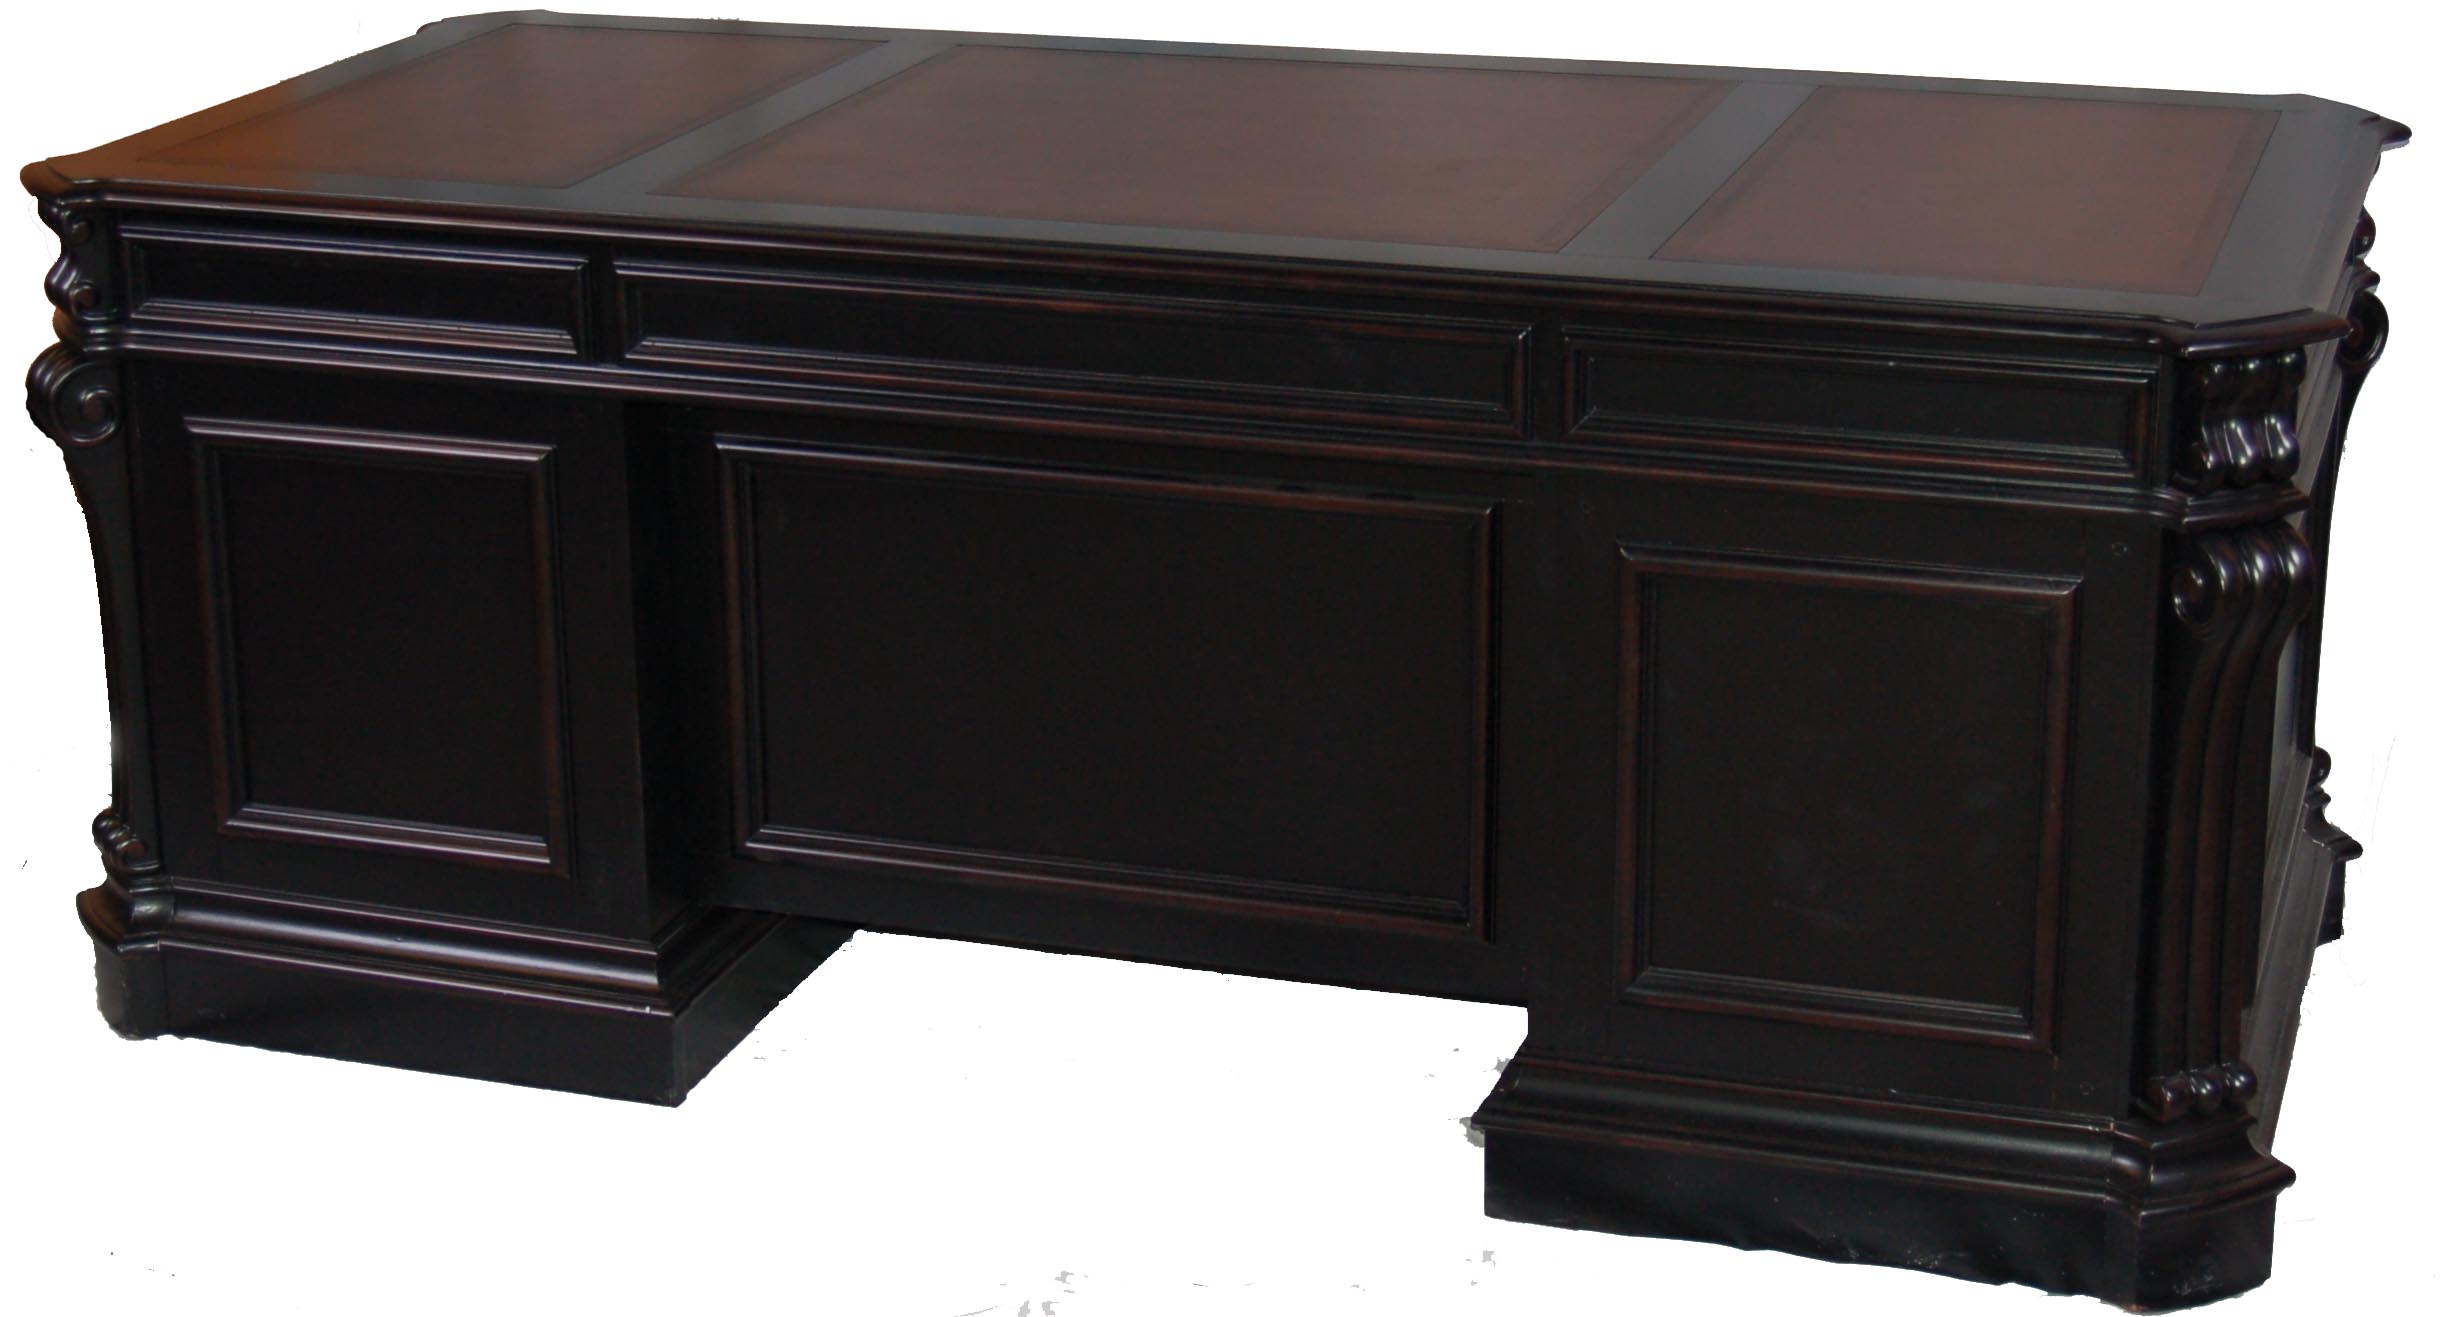 executive writing desks Browse a large selection of desk and hutch designs for sale, including corner and l-shaped desks as well as writing and standing desk ideas for your home office.